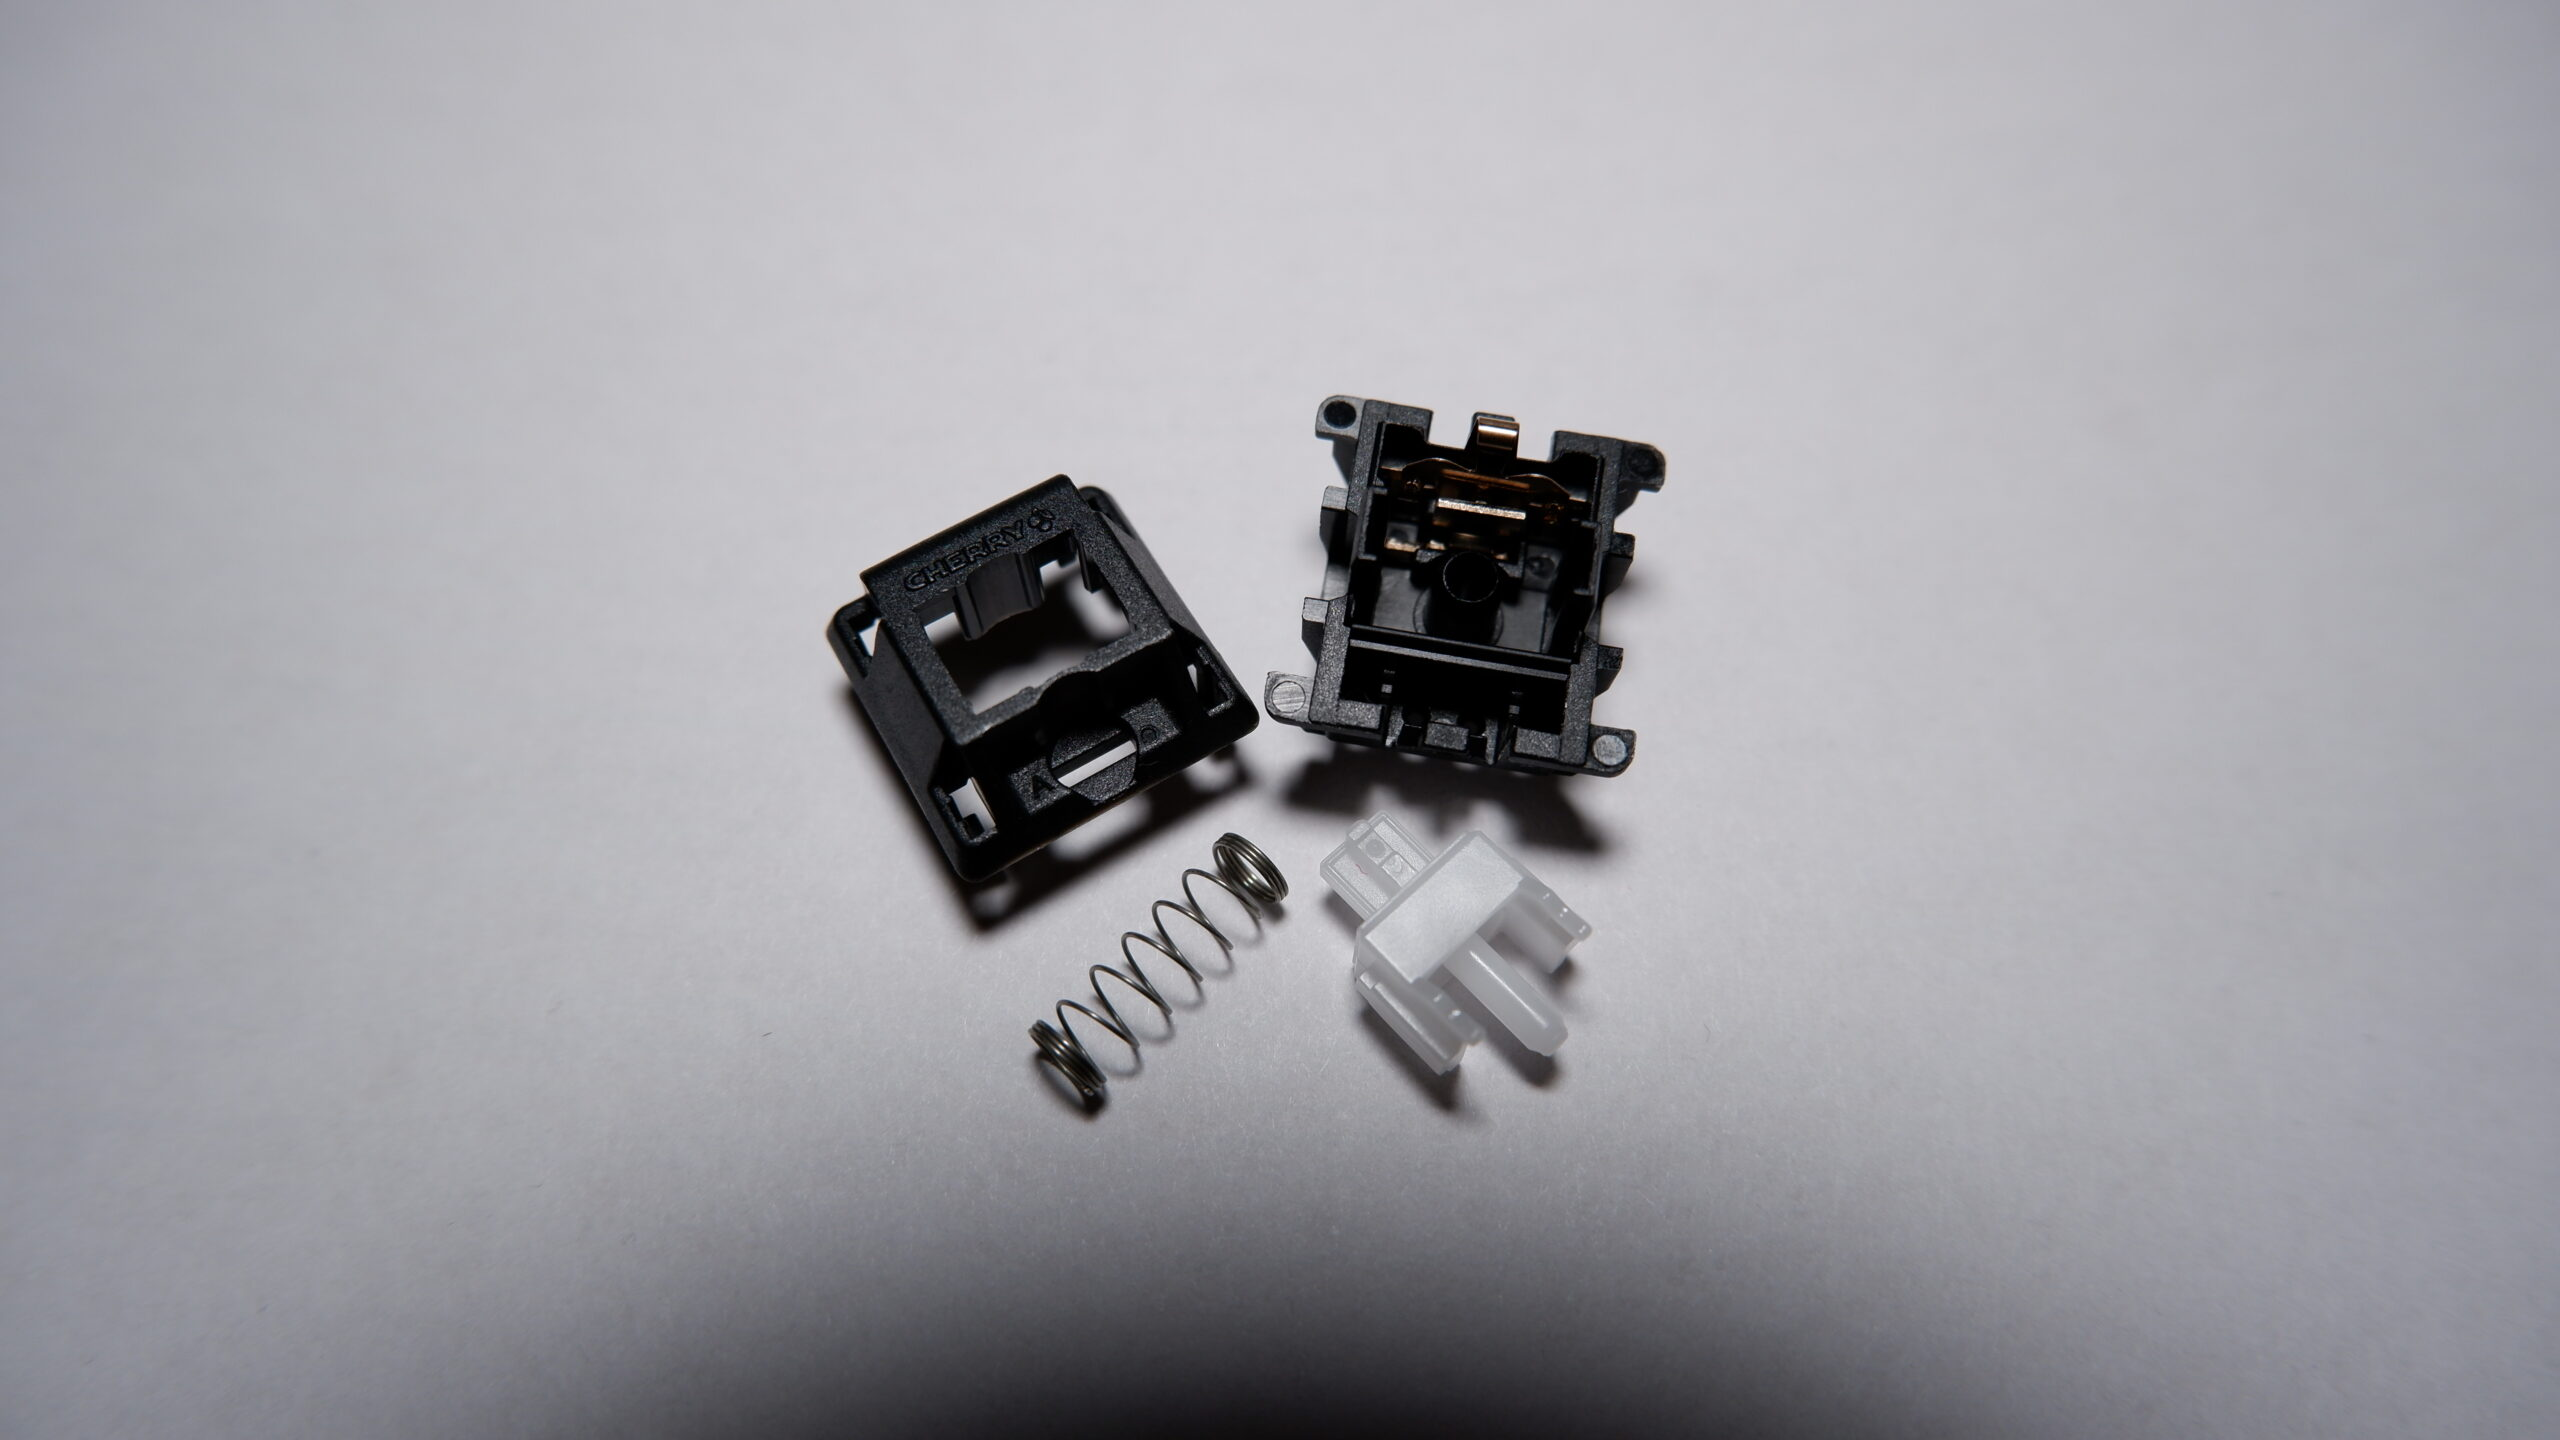 Cherry MX Clear switch disassembled